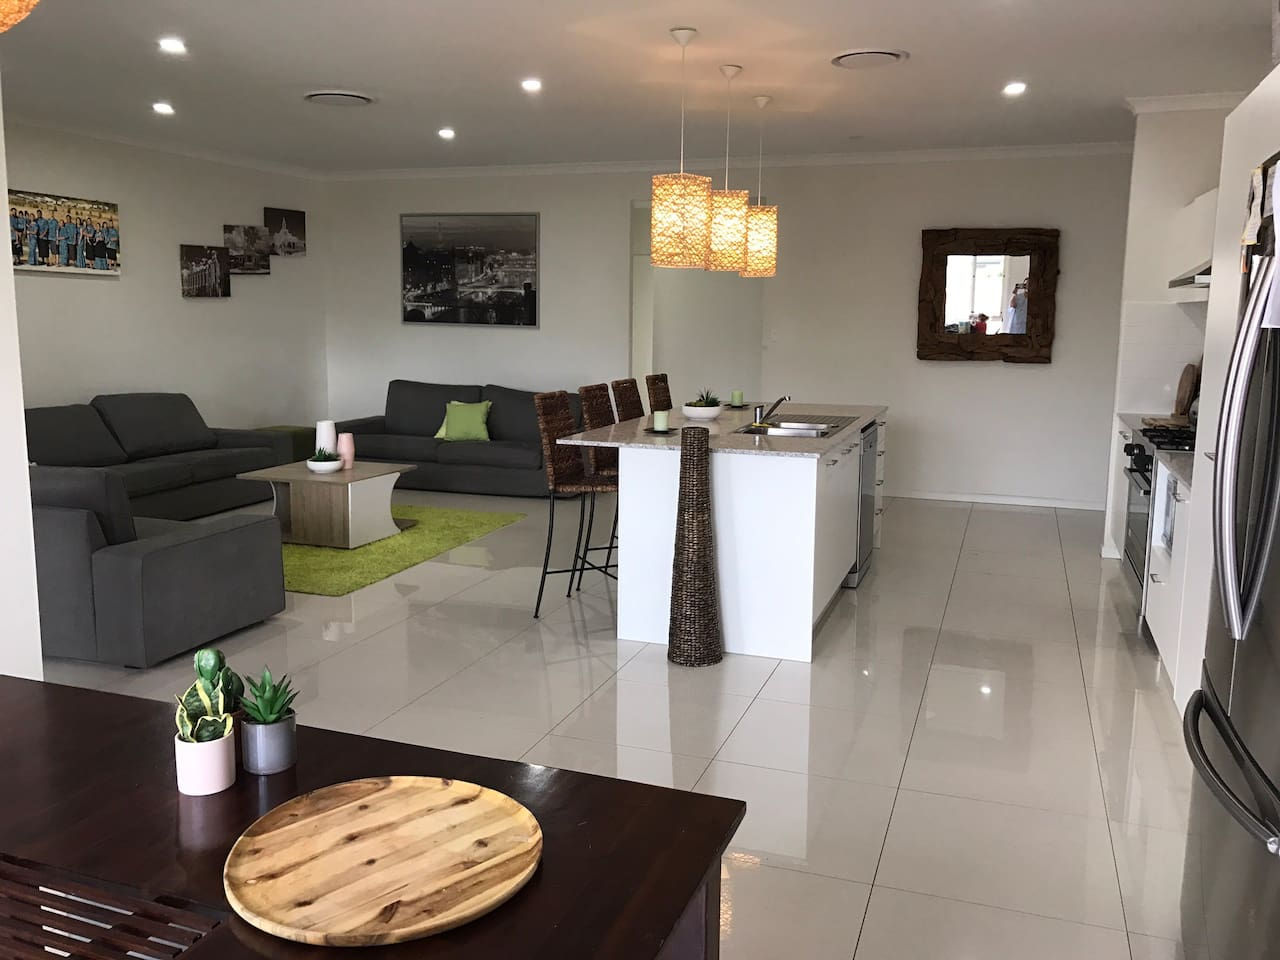 A modern cosy spacious home with open living plan & ducted air conditioning in all bedrooms & throughout entire house Comfort Clean fully furnished with all necessary amenities to make your stay comfortable & relax In a safe friendly neighbourhood.